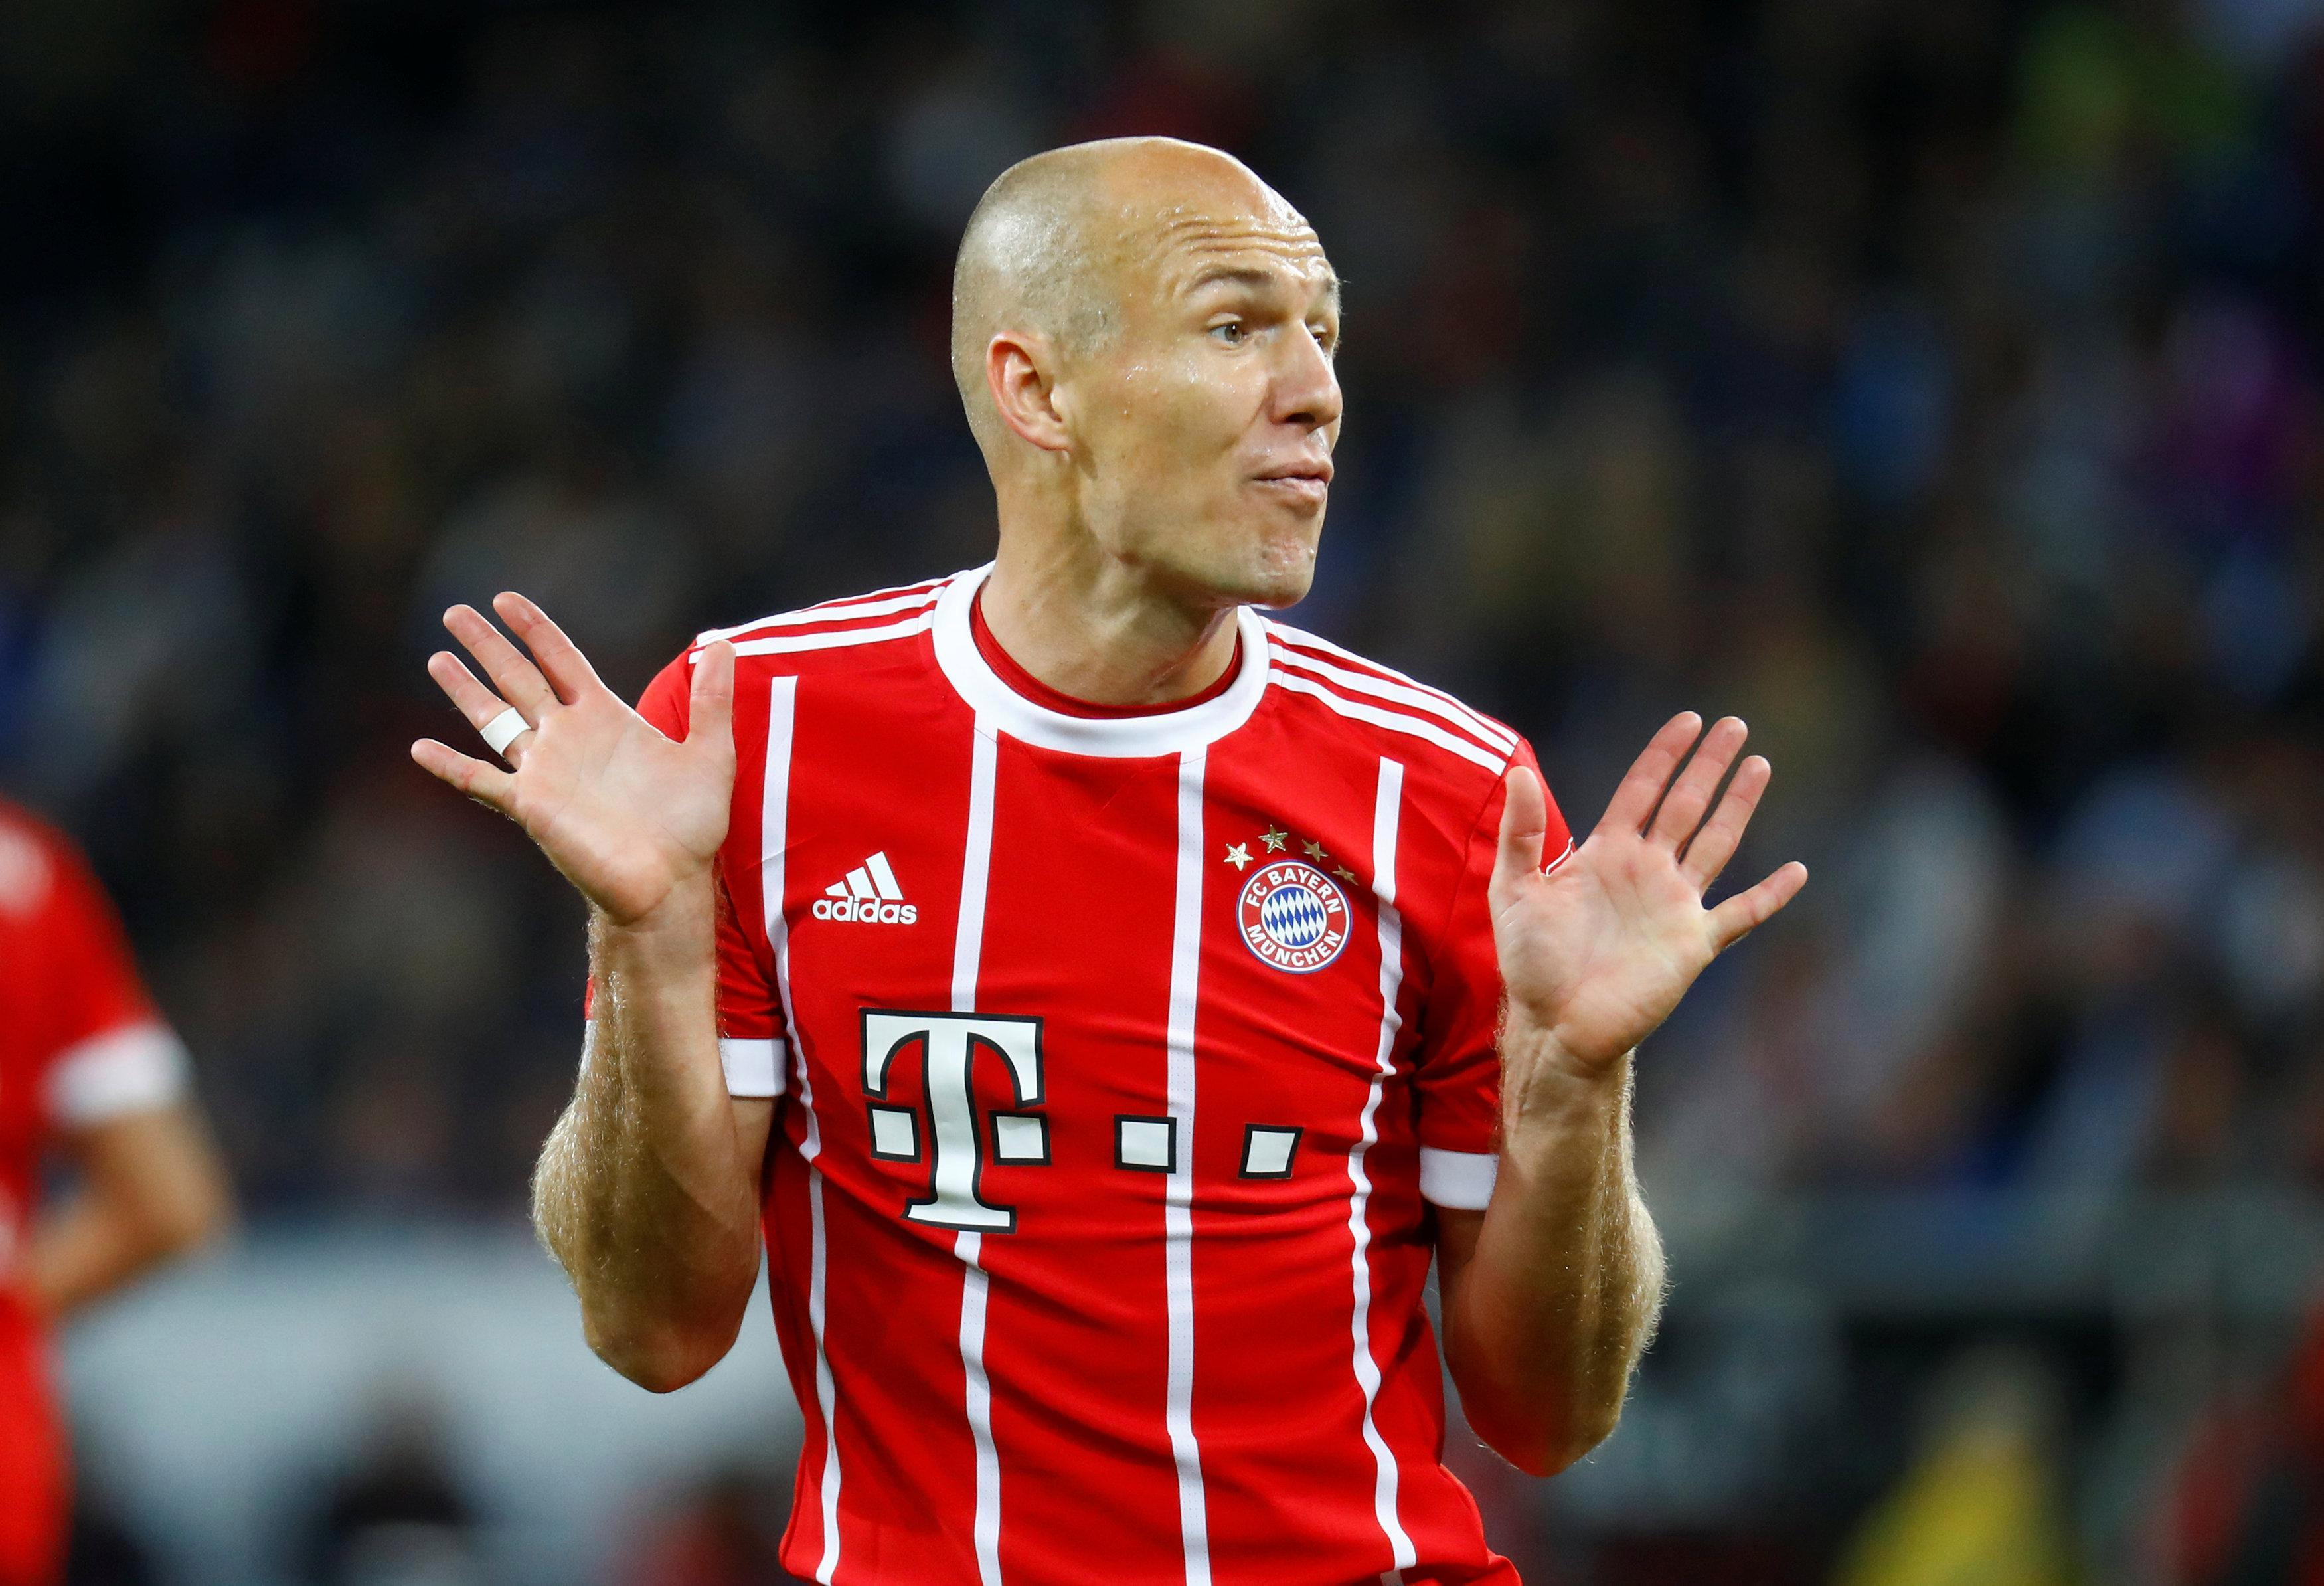 Robben is now 33